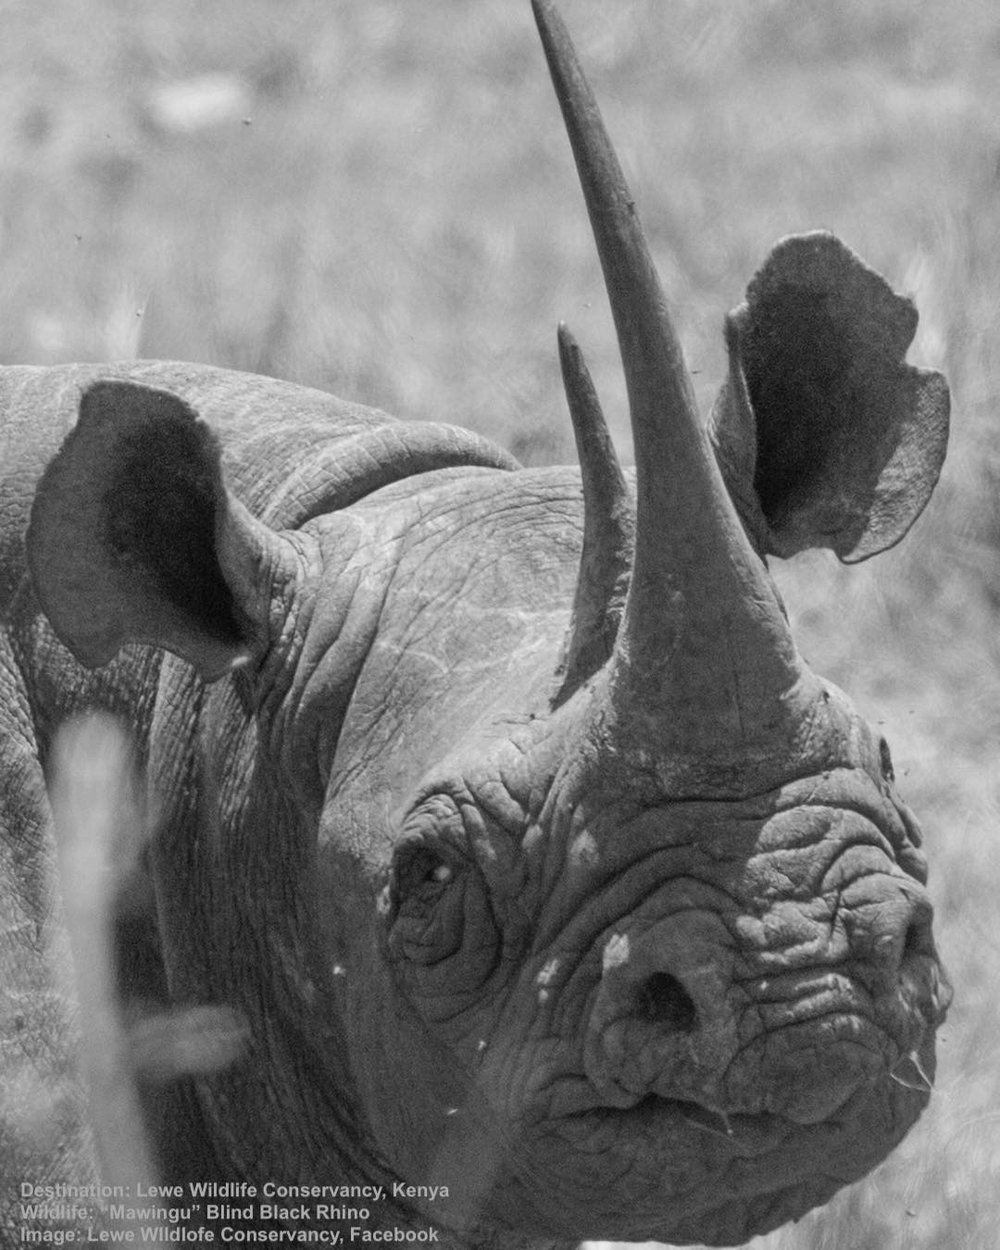 MAWINGA, A FEMALE BLACK RHINO BORN SEMI-BLIND, LIVED A HEALTHY AND PRODUCTIVE LIFE AT LEWA CONSERVANCY. IMAGE:  LEWA CONSERVANCY,  FACEBOOK